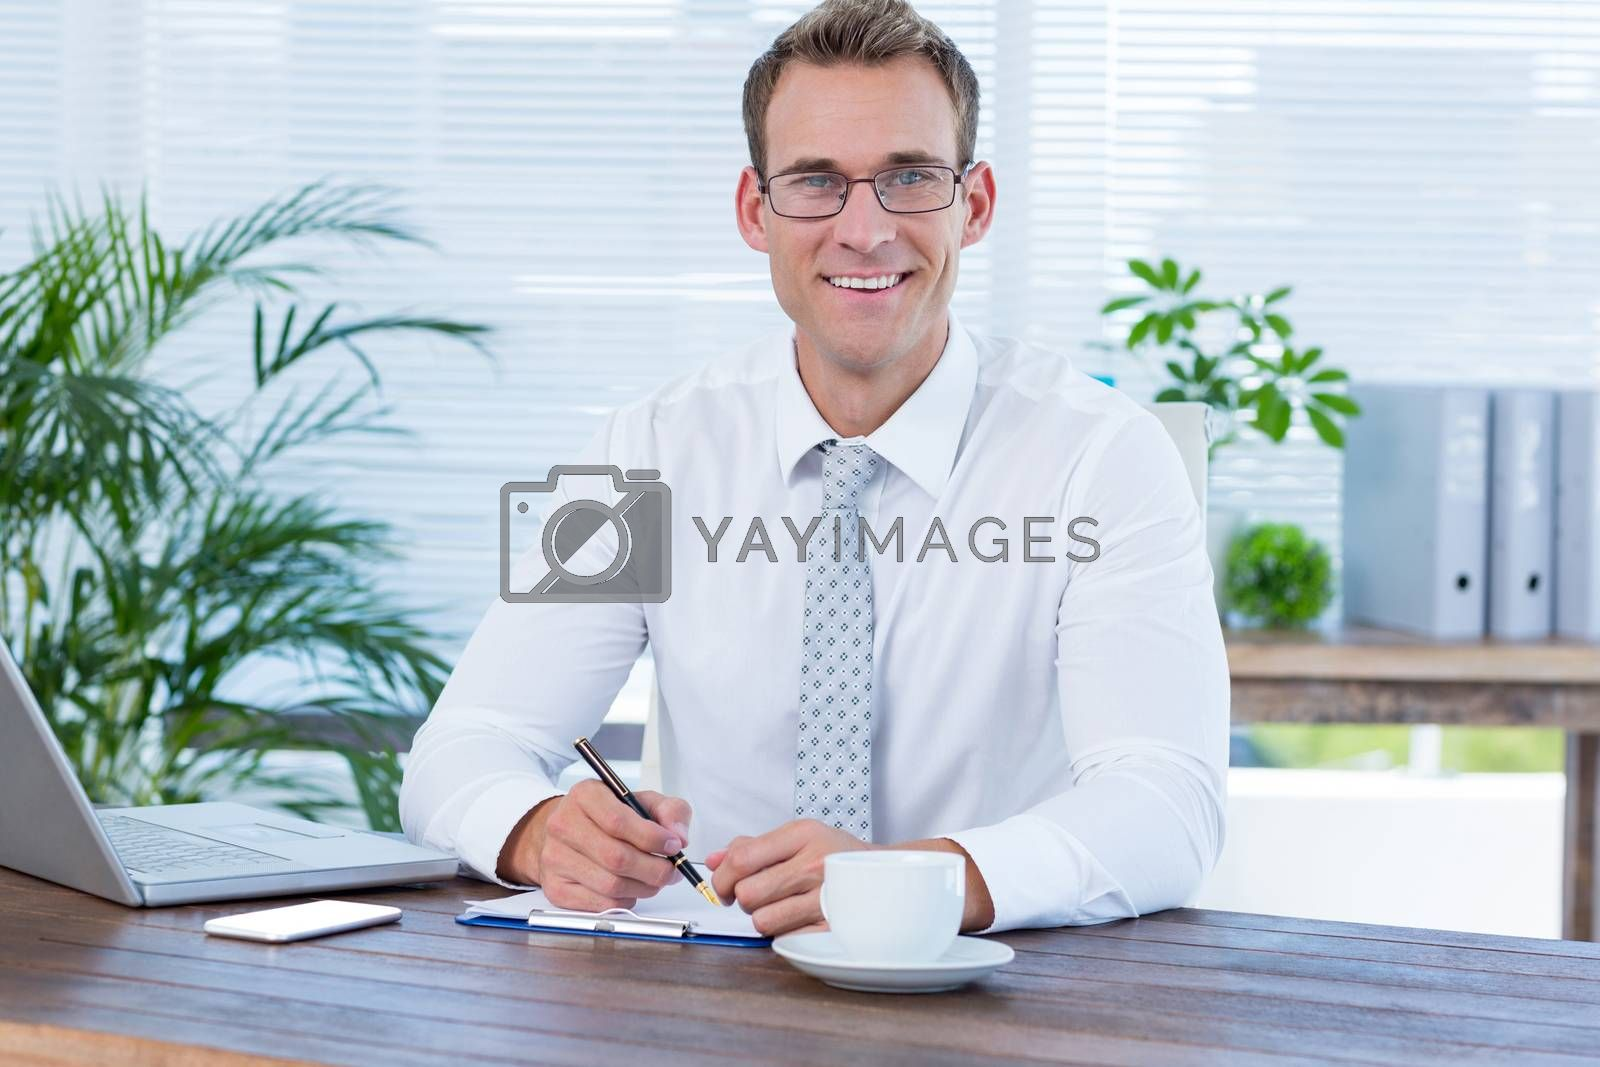 Royalty free image of Smiling businessman writing on notebook by Wavebreakmedia